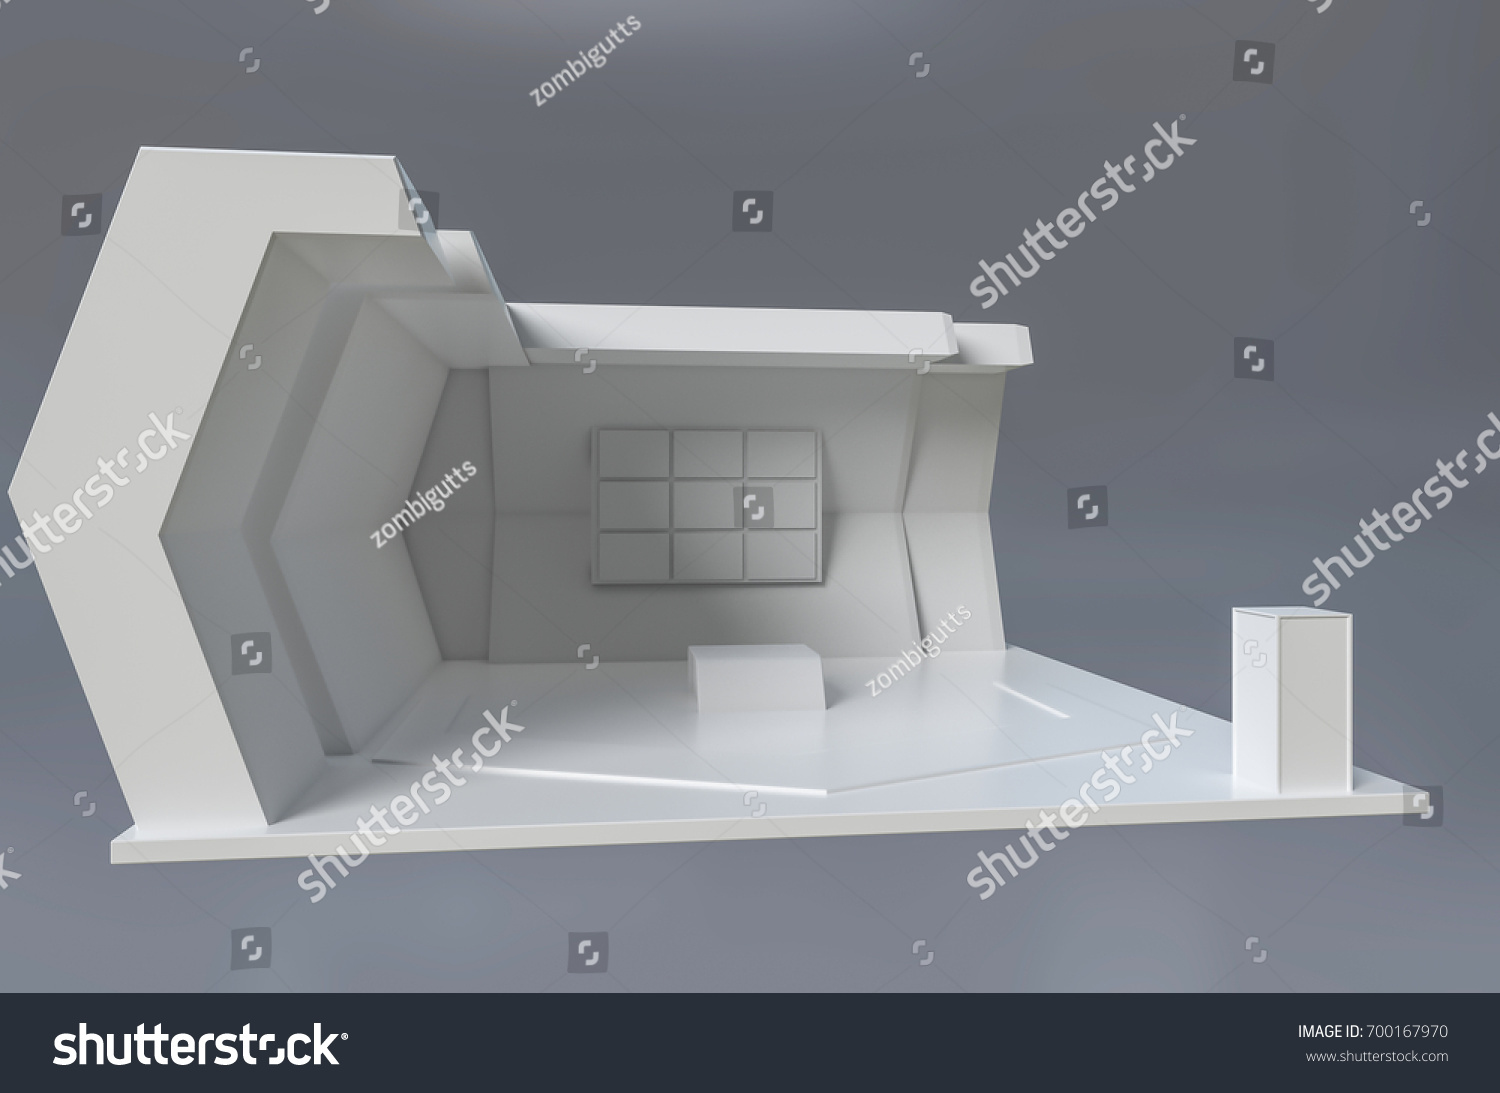 Exhibition Stand 3d Model : Exhibition stand template branding design 3 d stock illustration